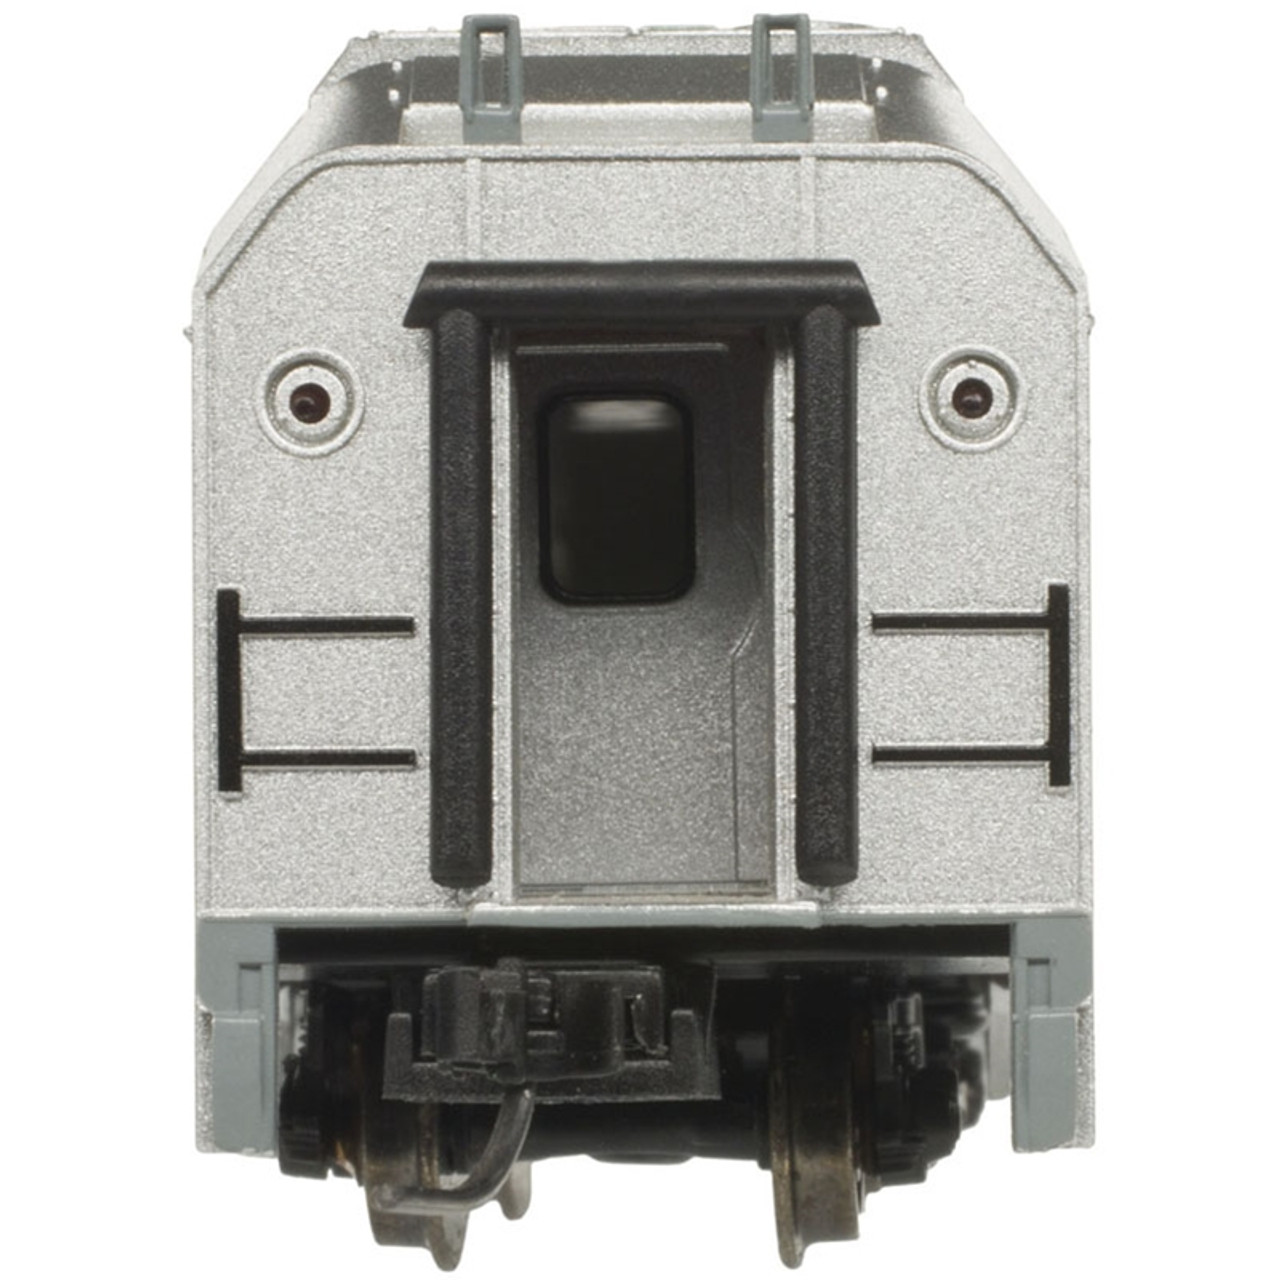 ATLAS 40004056 NJ Transit - Multi-Level Trailer with out Toilet #7569 (SCALE=N) Part # 150-40004056